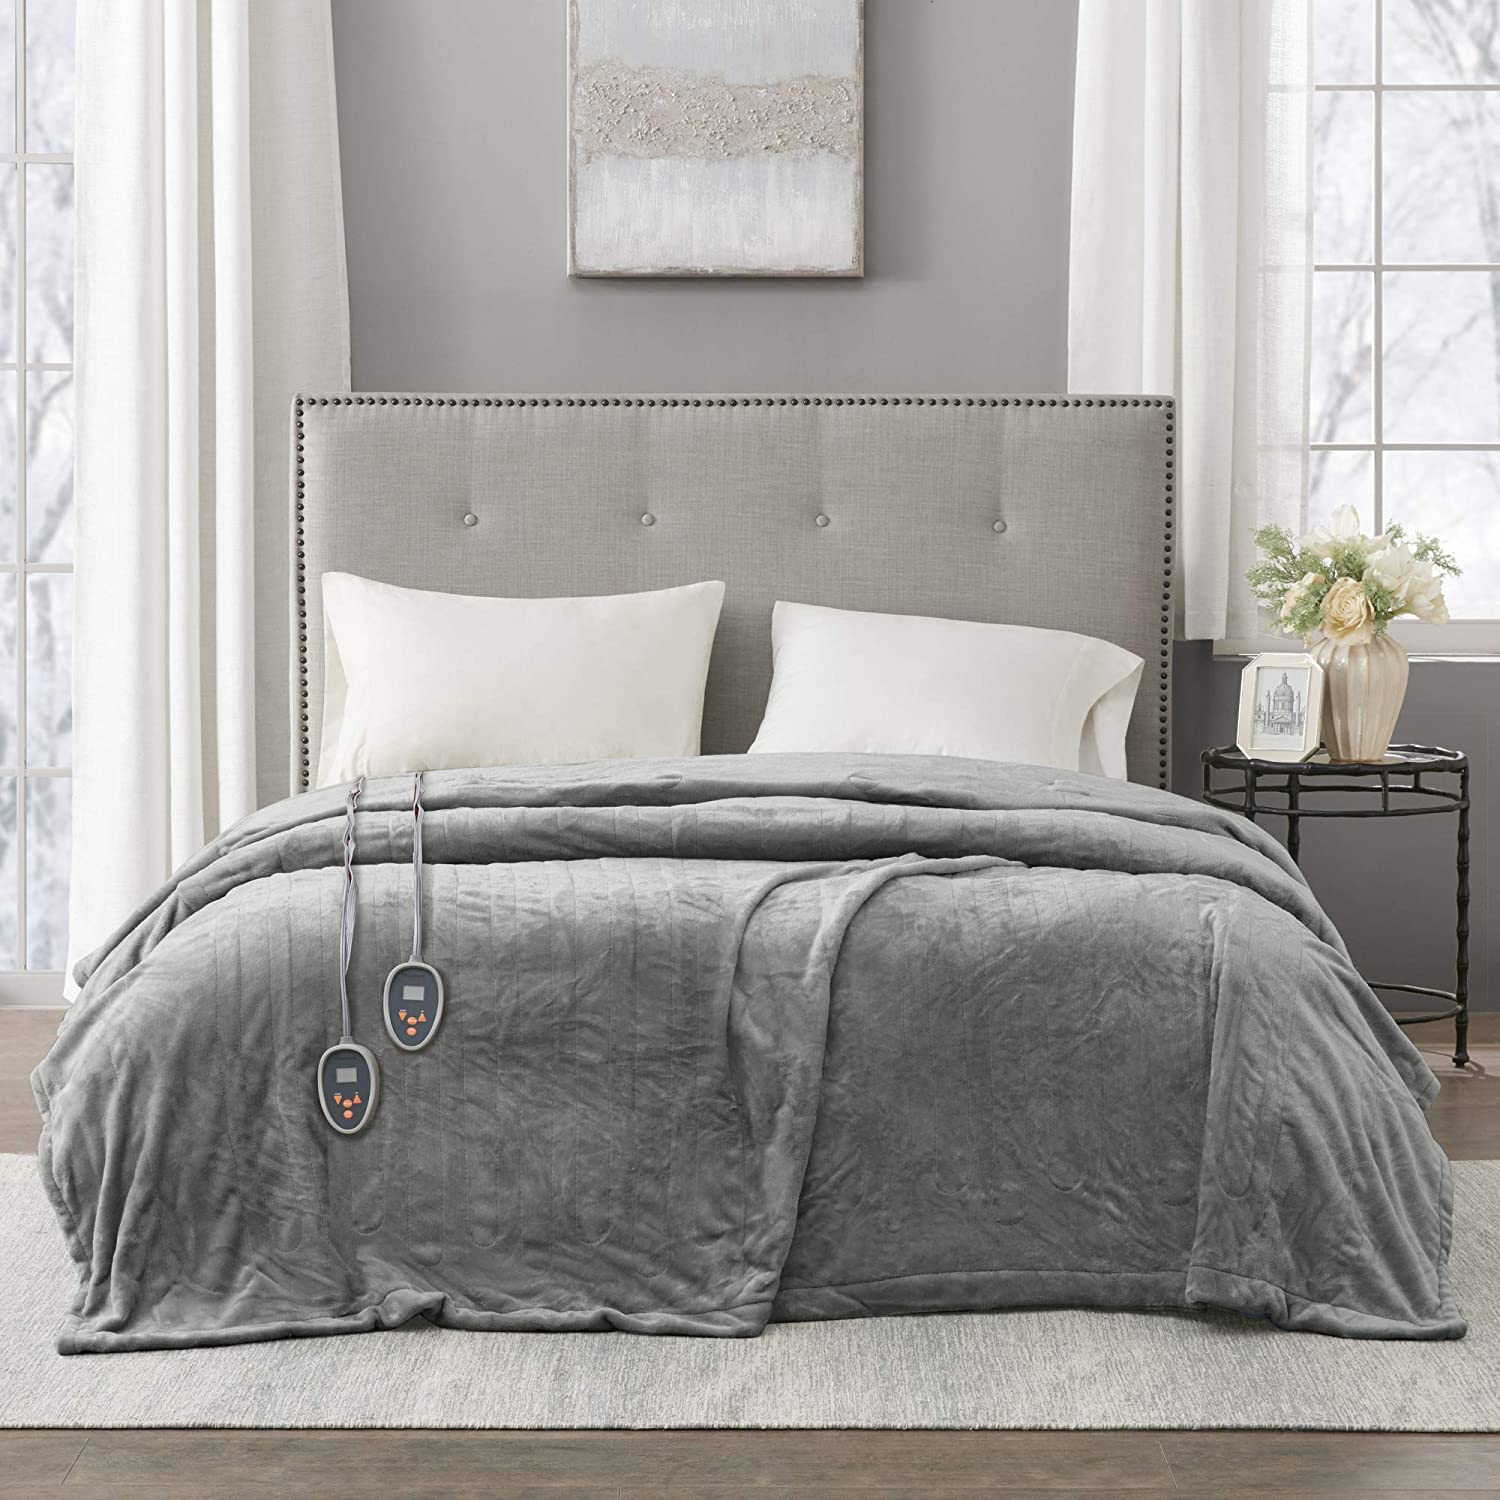 Beautyrest Plush Elect Electric Blanket with Two 20 Heat Level Setting Controllers equip with Secure Comfort Technology and 10 Hours Auto Shut Off, King, Grey